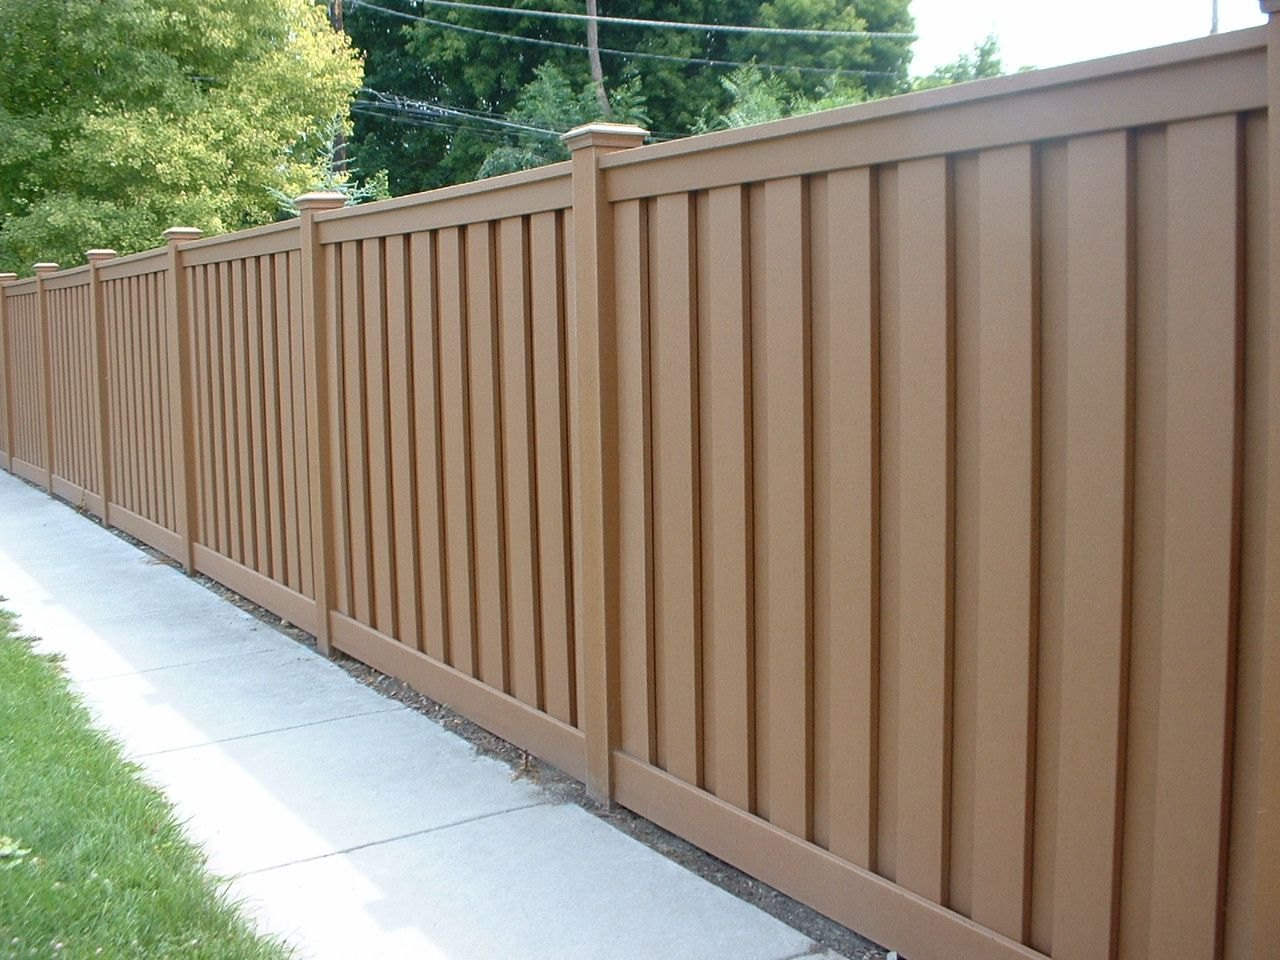 Outdoor patio privacy screen ideas 10 composite wood for Wood screen fence